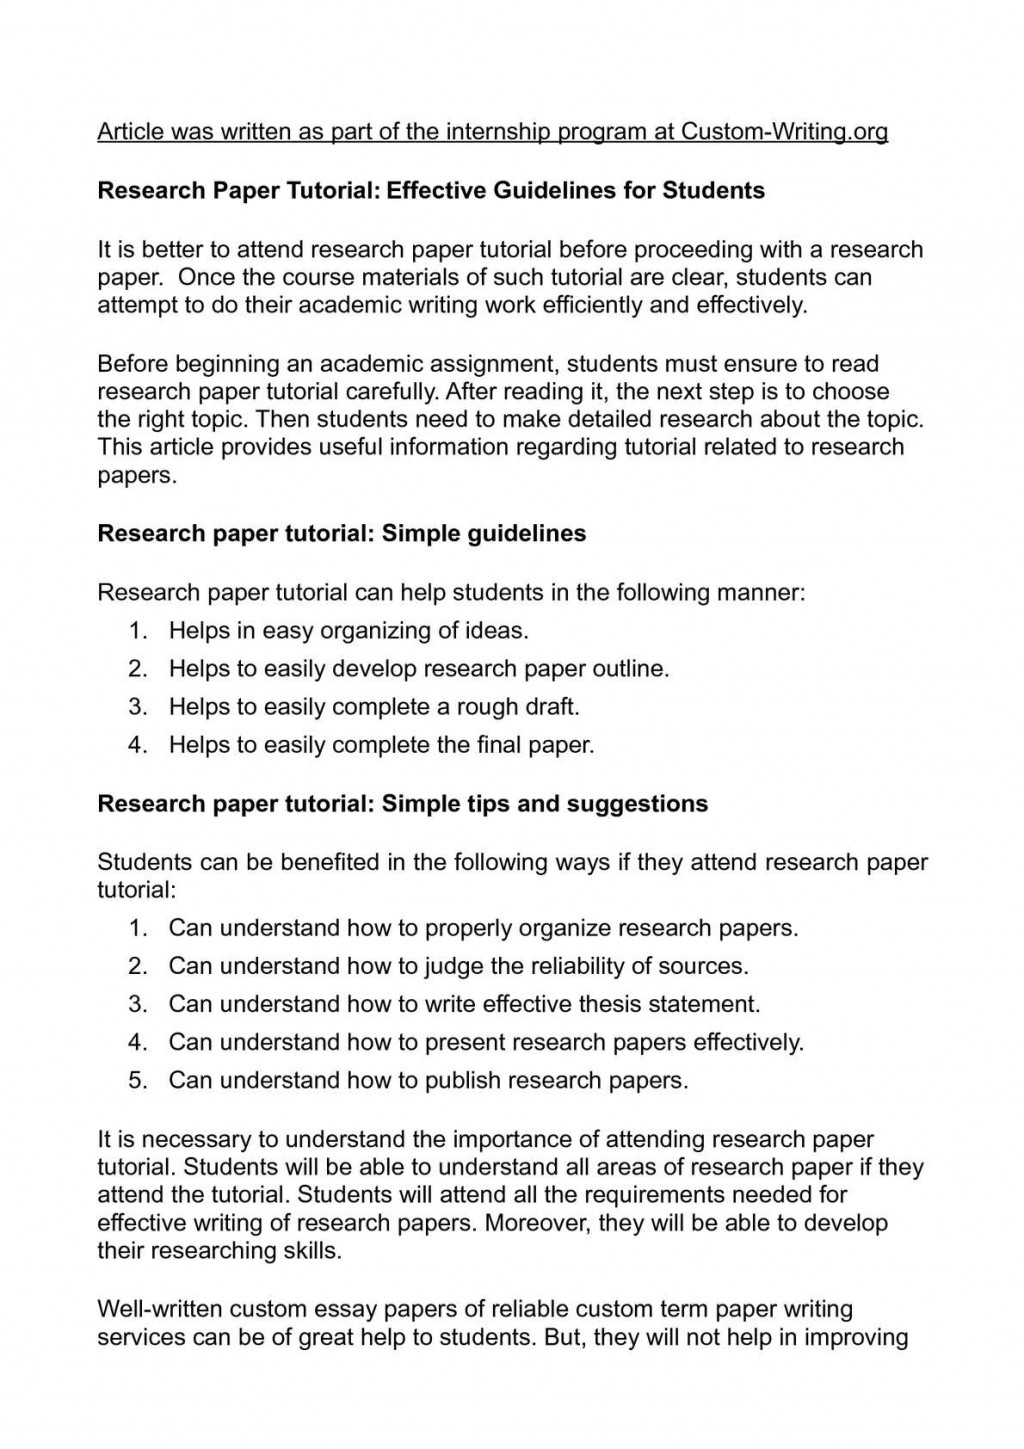 009 P1 Research Paper Custom Written Beautiful Papers Large